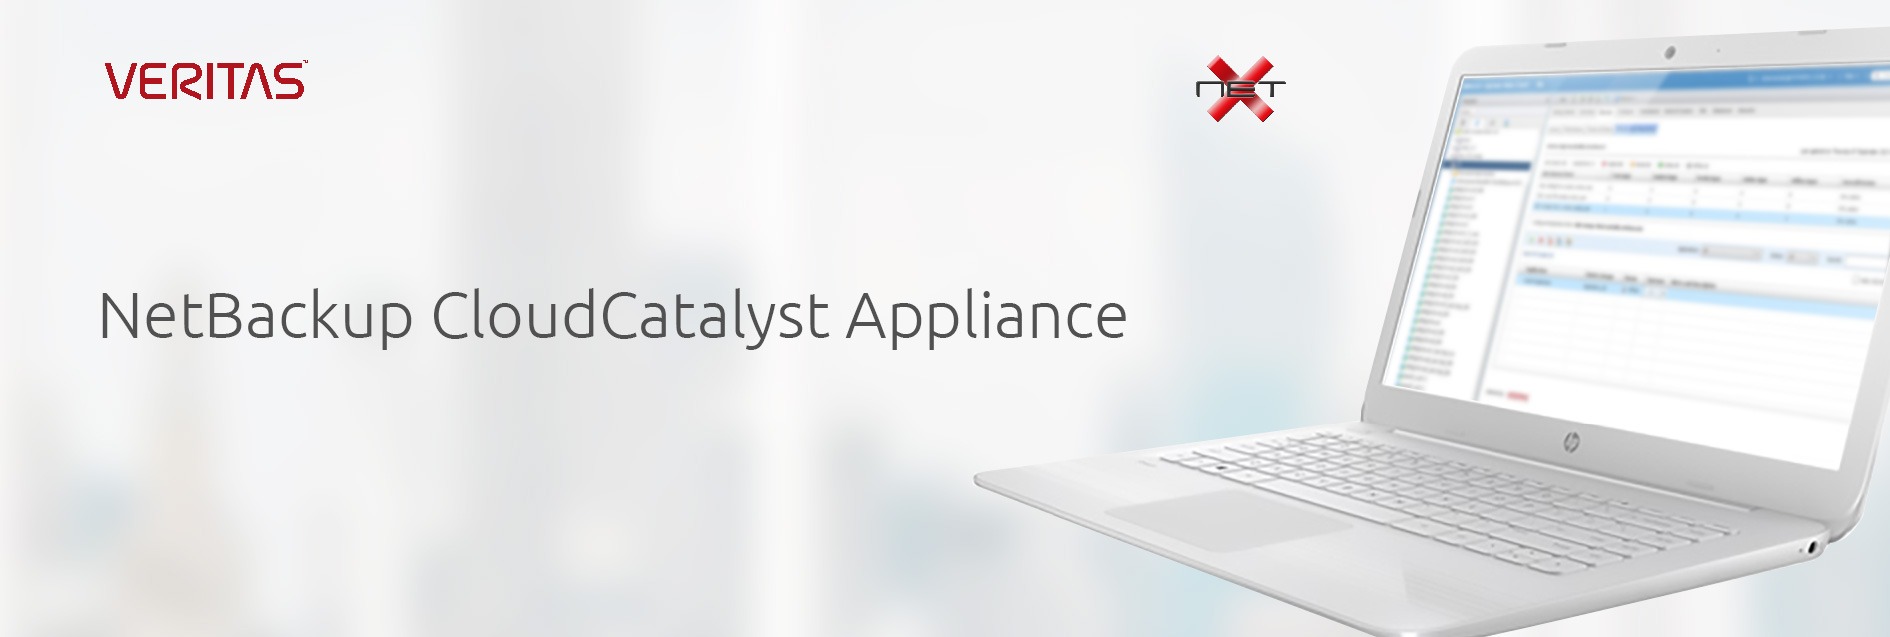 netx-veritas-cloud-catalyst-banner